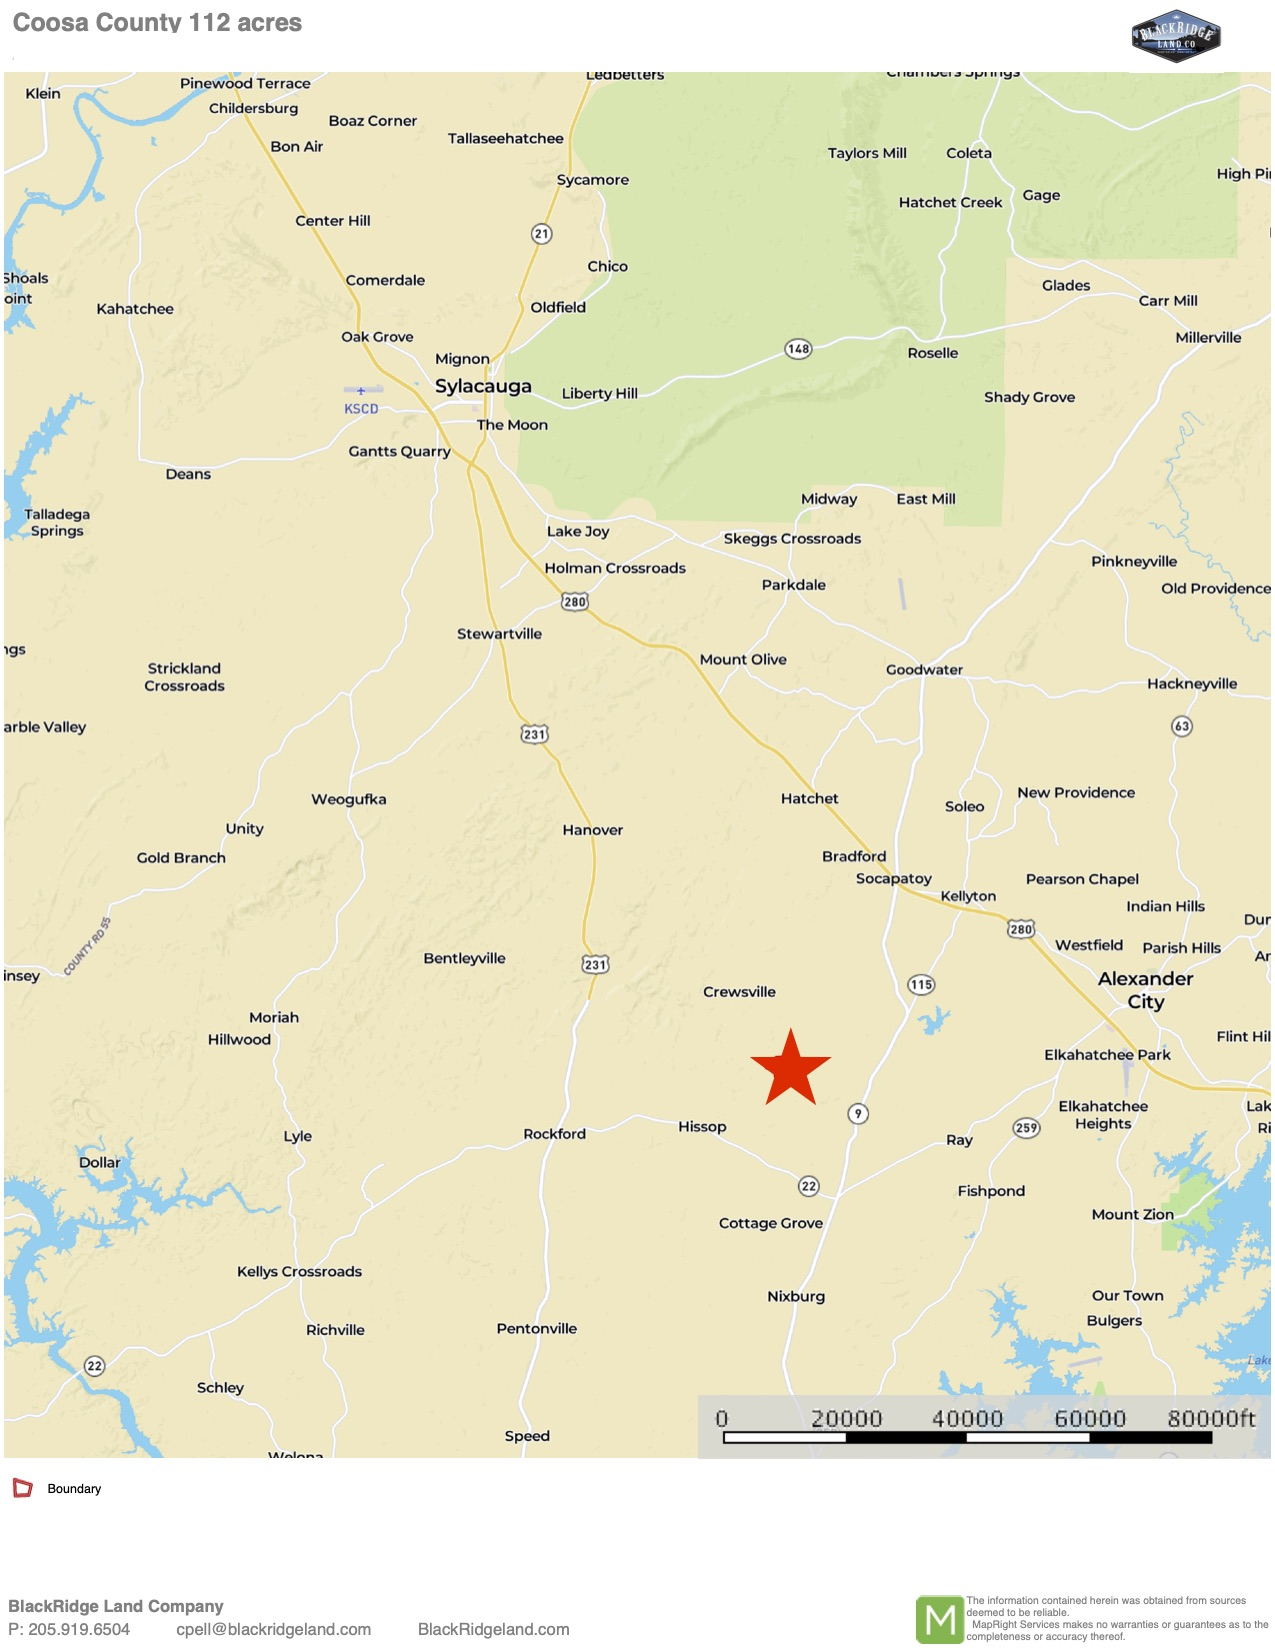 Coosa Co 112 Location Map